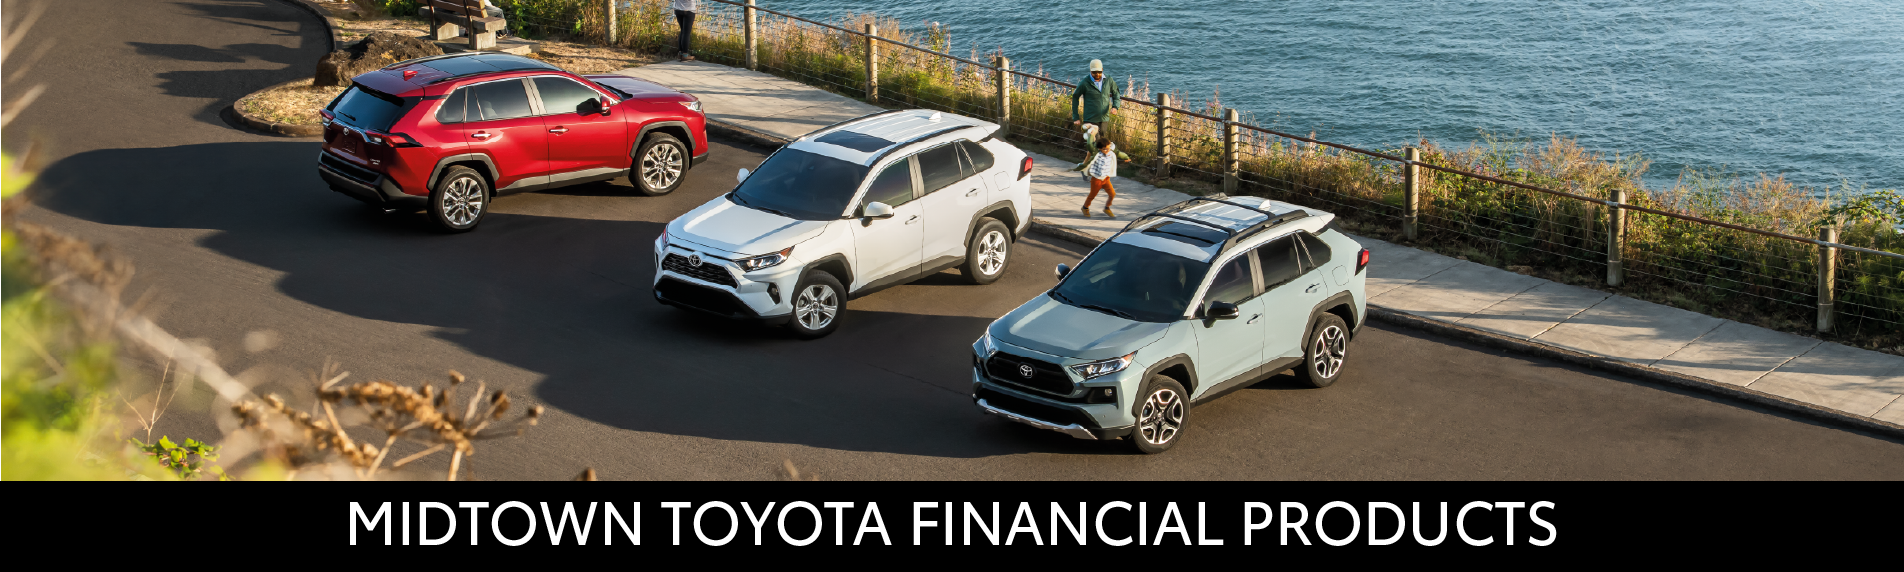 Midtown Toyota Financial Products